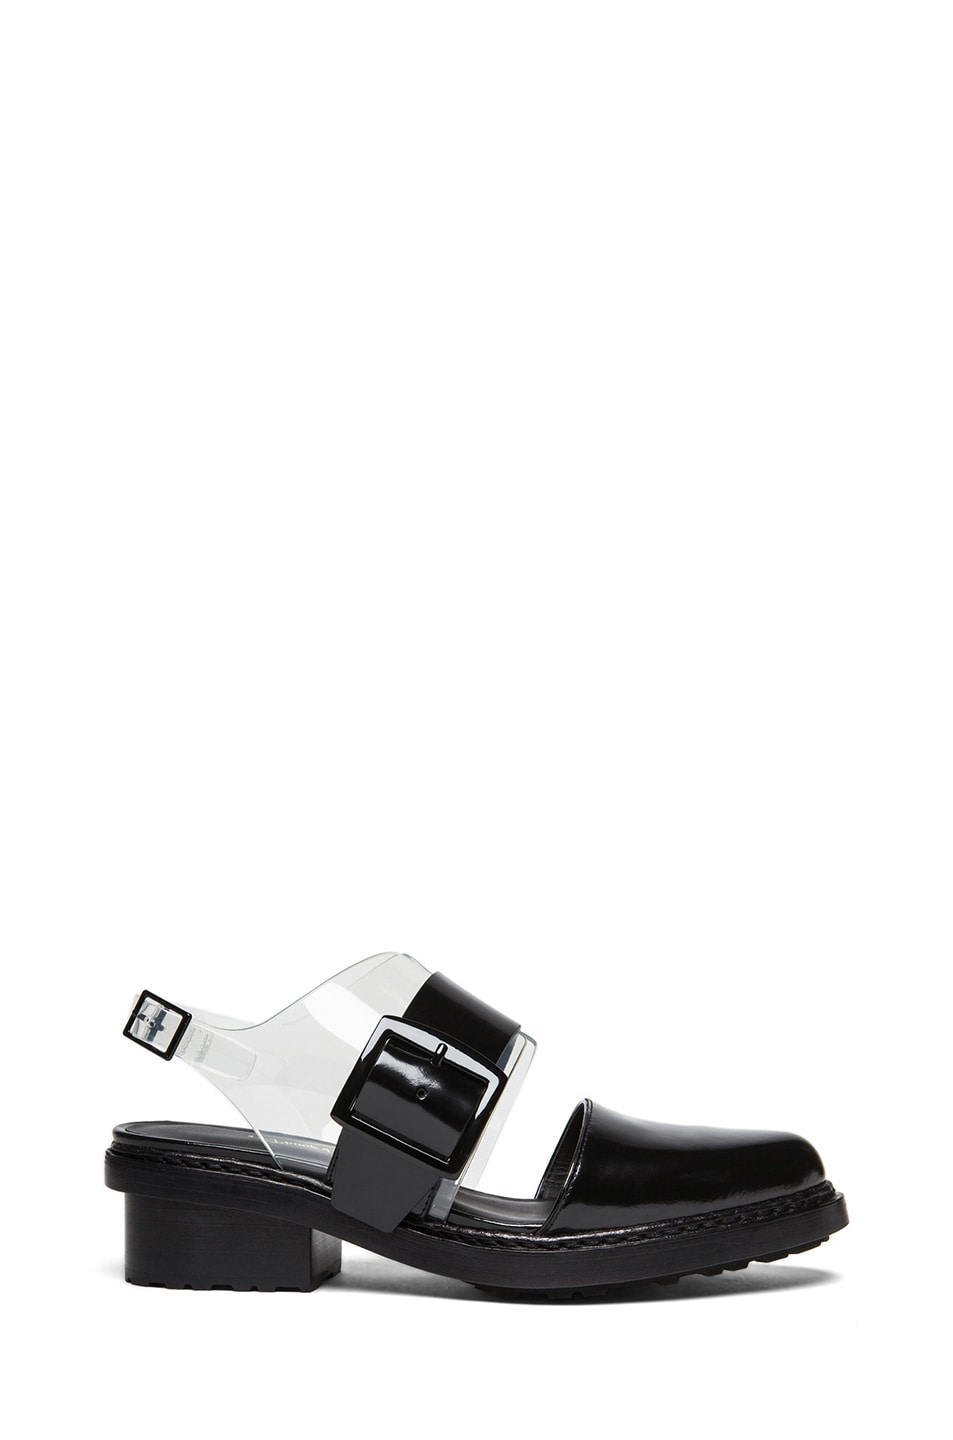 Image 1 of 3.1 phillip lim Cristobal Closed Toe Pvc & Leather Slingbacks in Black & Clear